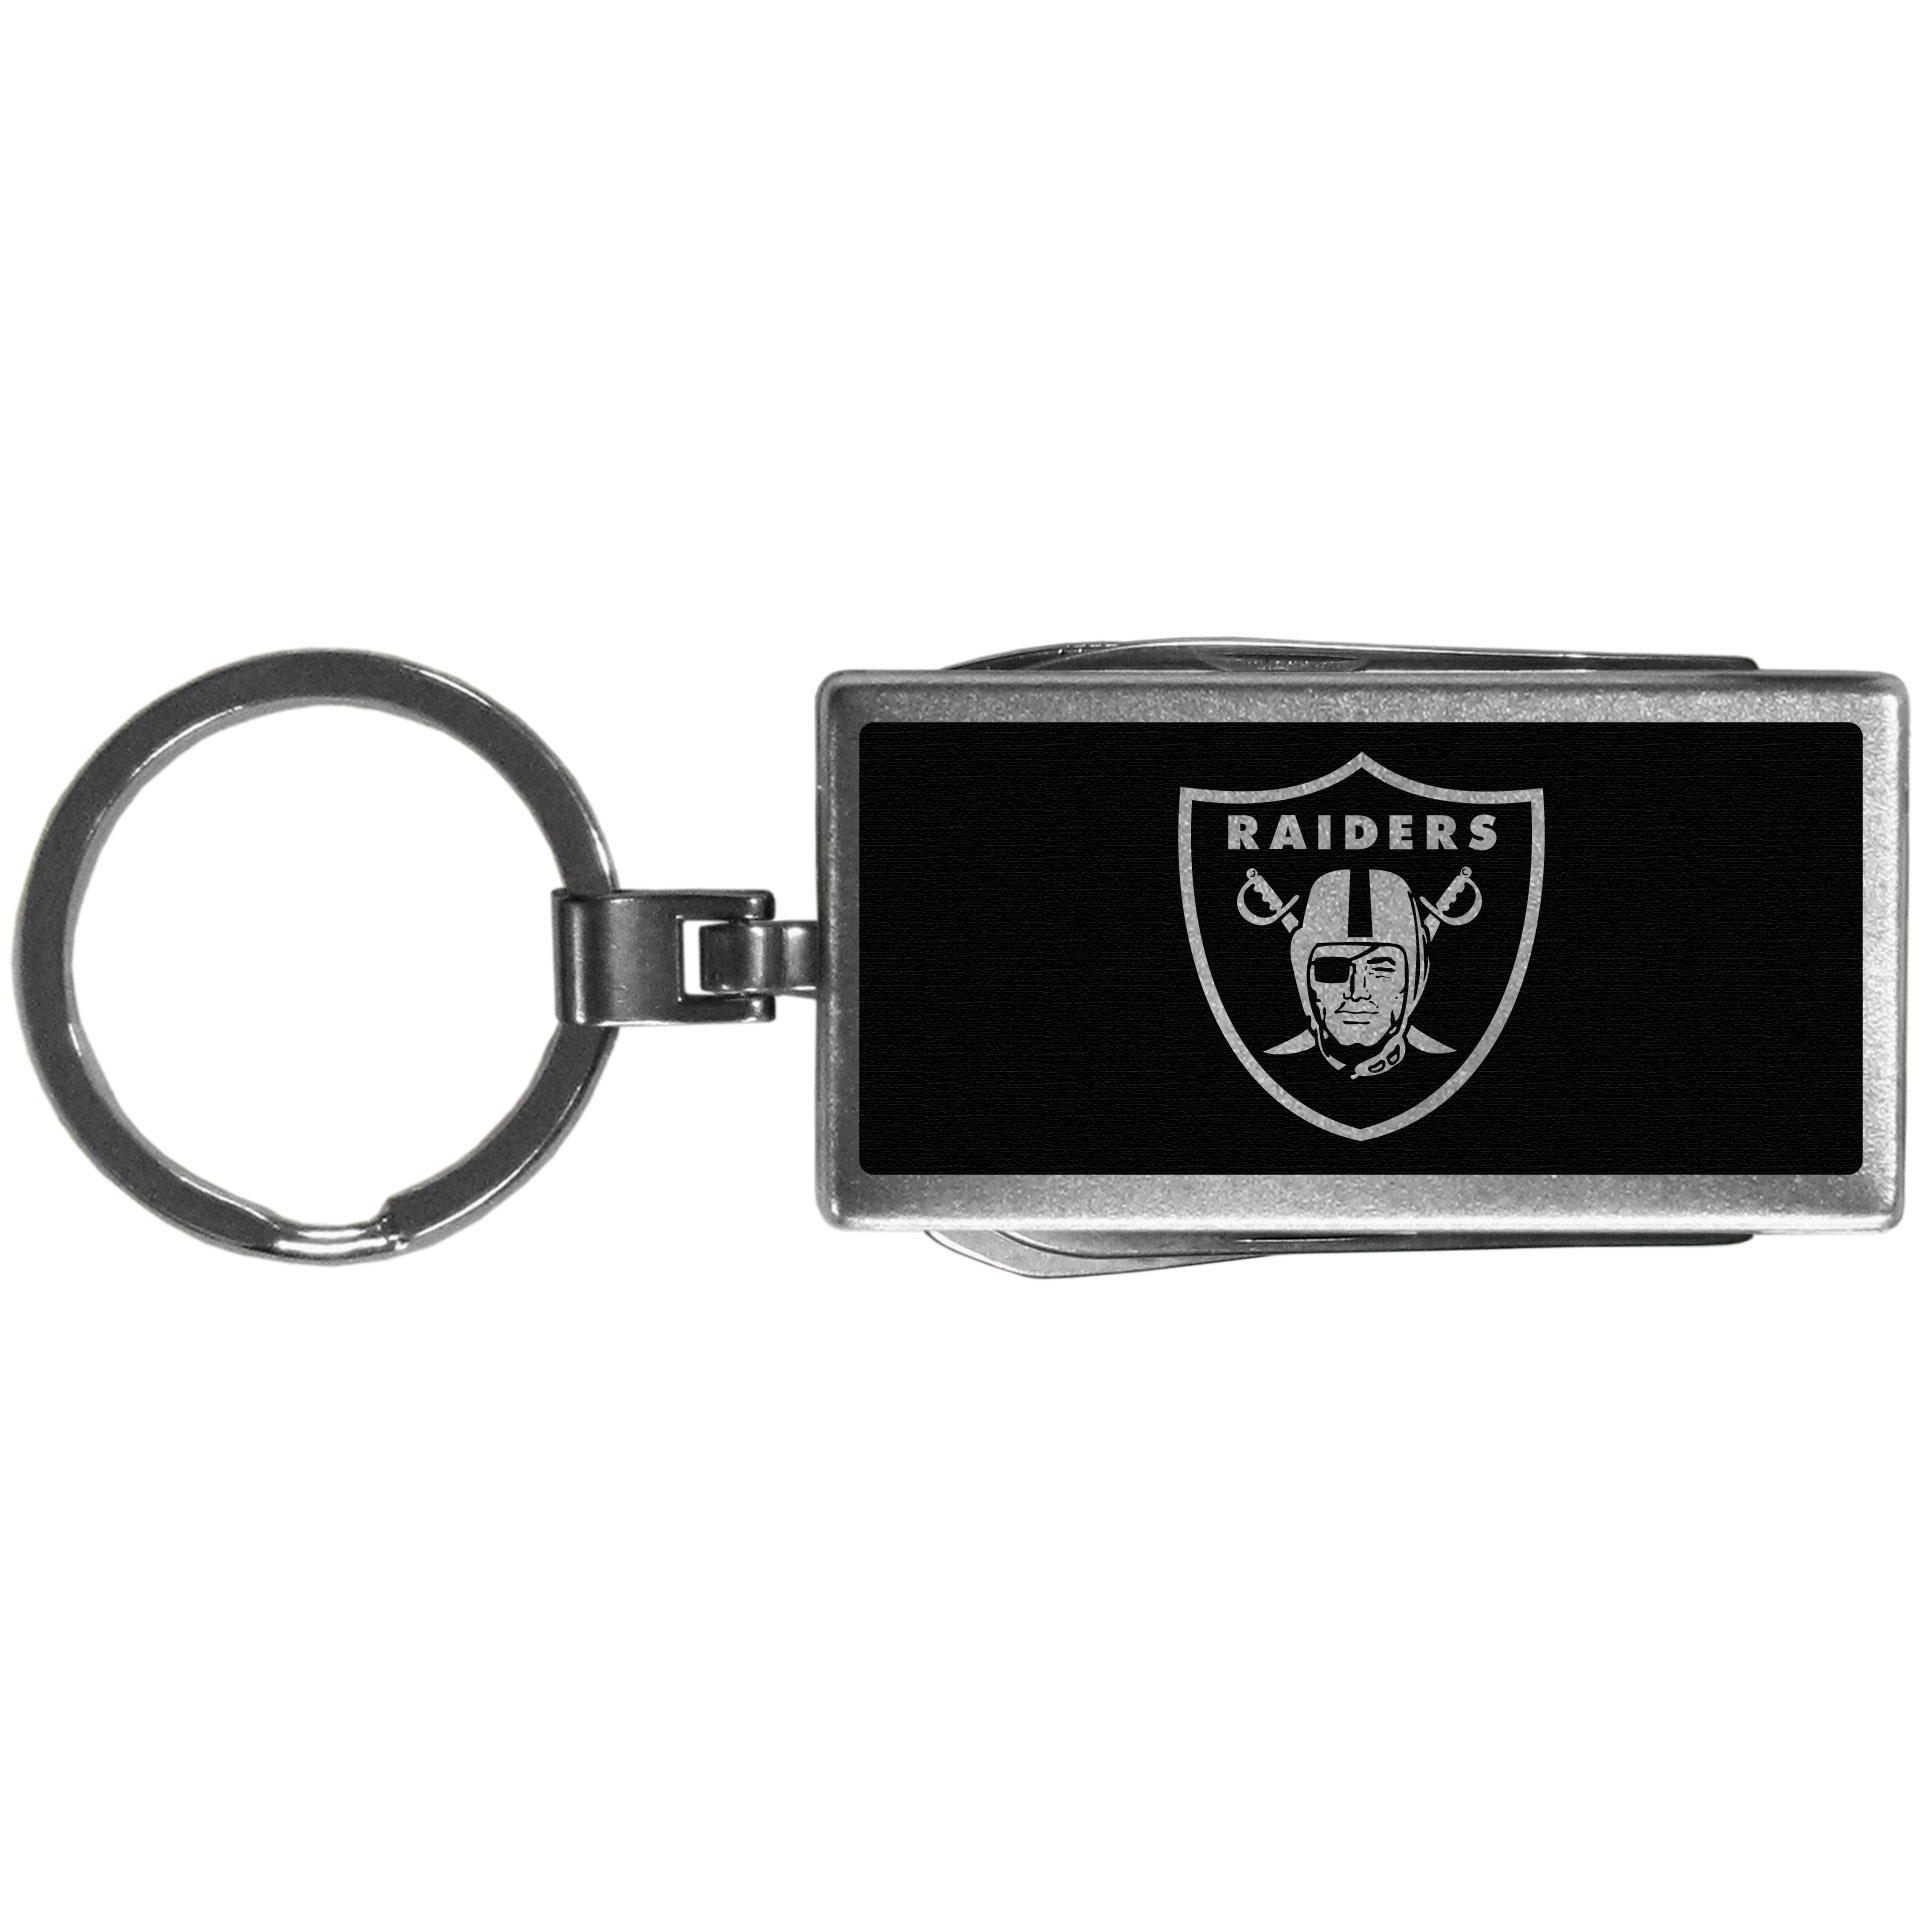 Oakland Raiders Multi-tool Key Chain, Black - Be the hero at the tailgate, camping, or on a Friday night with your Oakland Raiders Multi-Tool Keychain which comes complete with bottle opener, scissors, knife, nail file and screw driver. Be it opening a package or a beverage Siskiyou's Multi-Tool Keychain goes wherever your keys do. The keychain hangs at 4 inches long when closed.